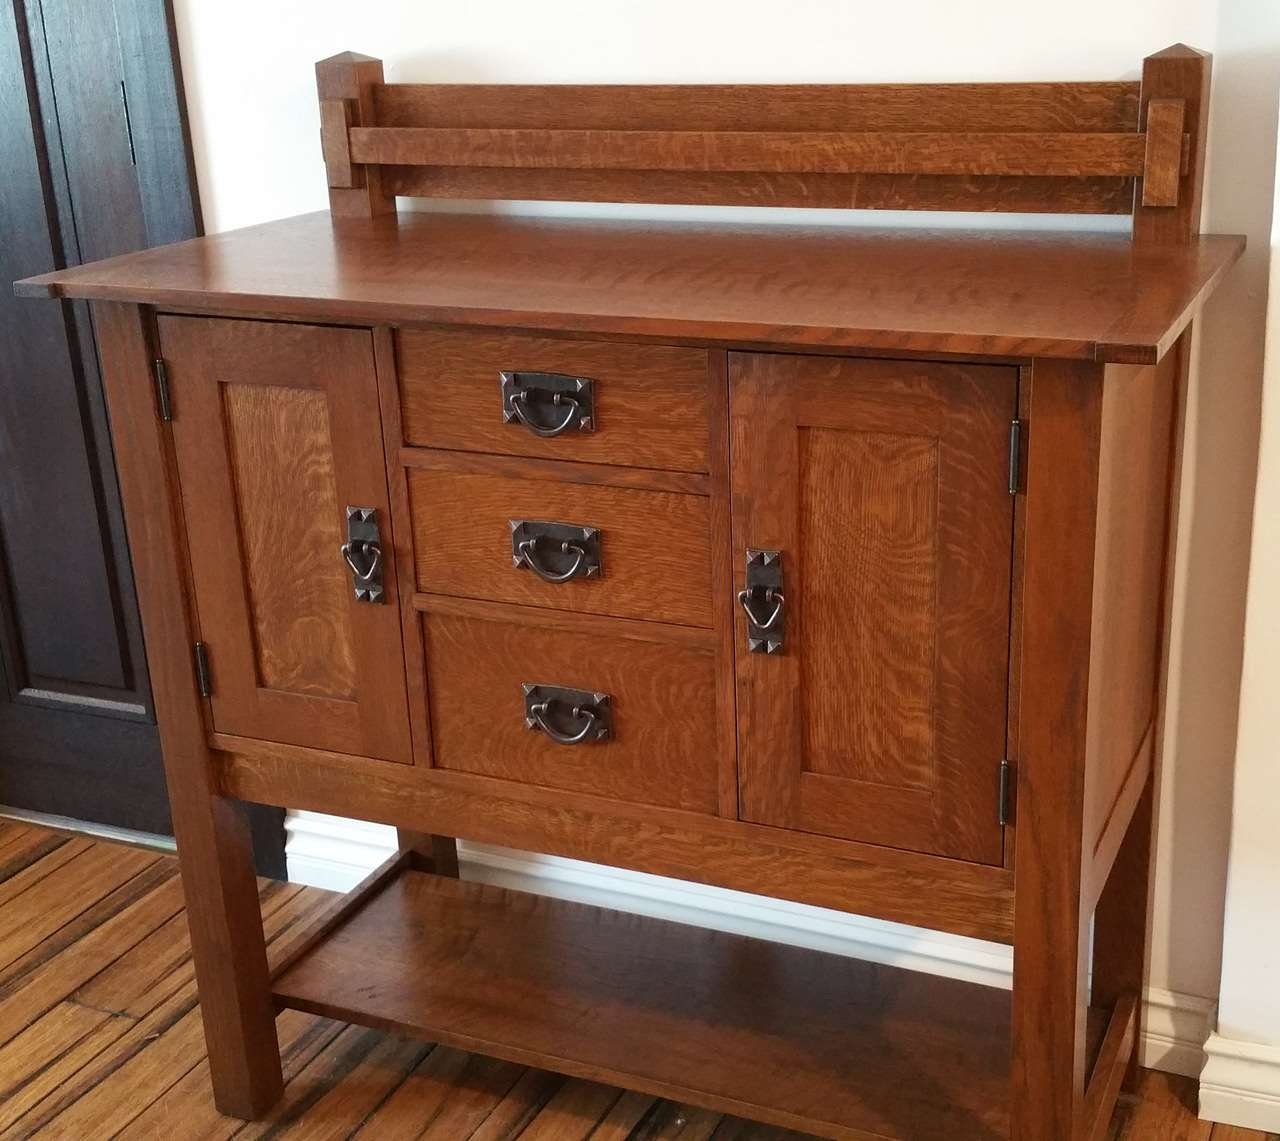 Stickley Sideboard Pertaining To Stickley Sideboards (View 16 of 20)